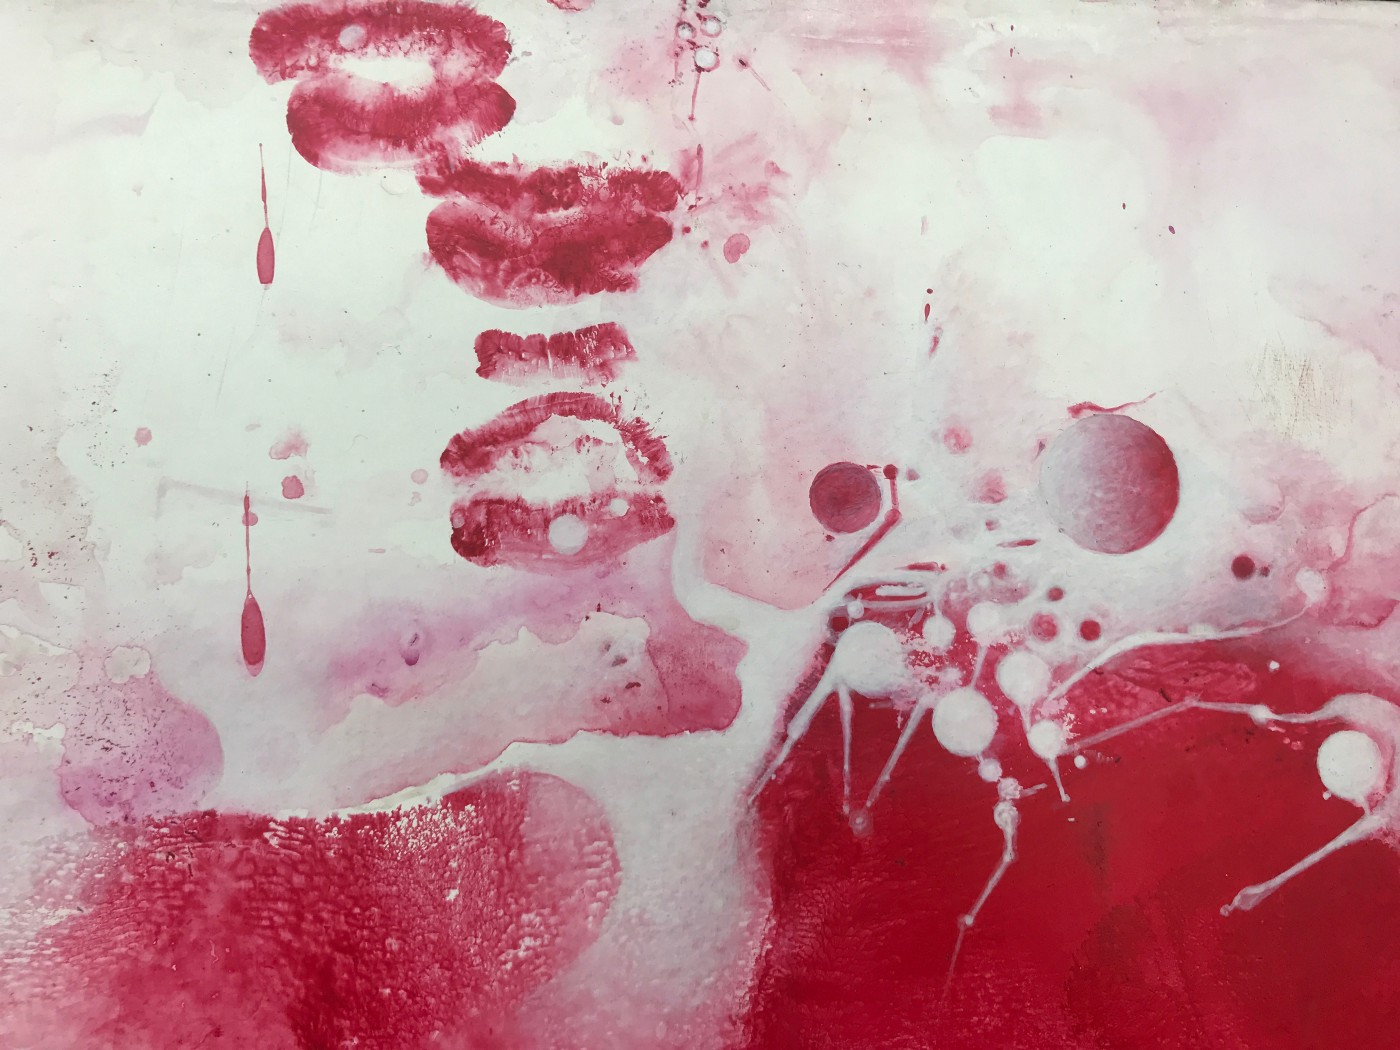 Abstract painting in red and white, inspires sensual thoughts.